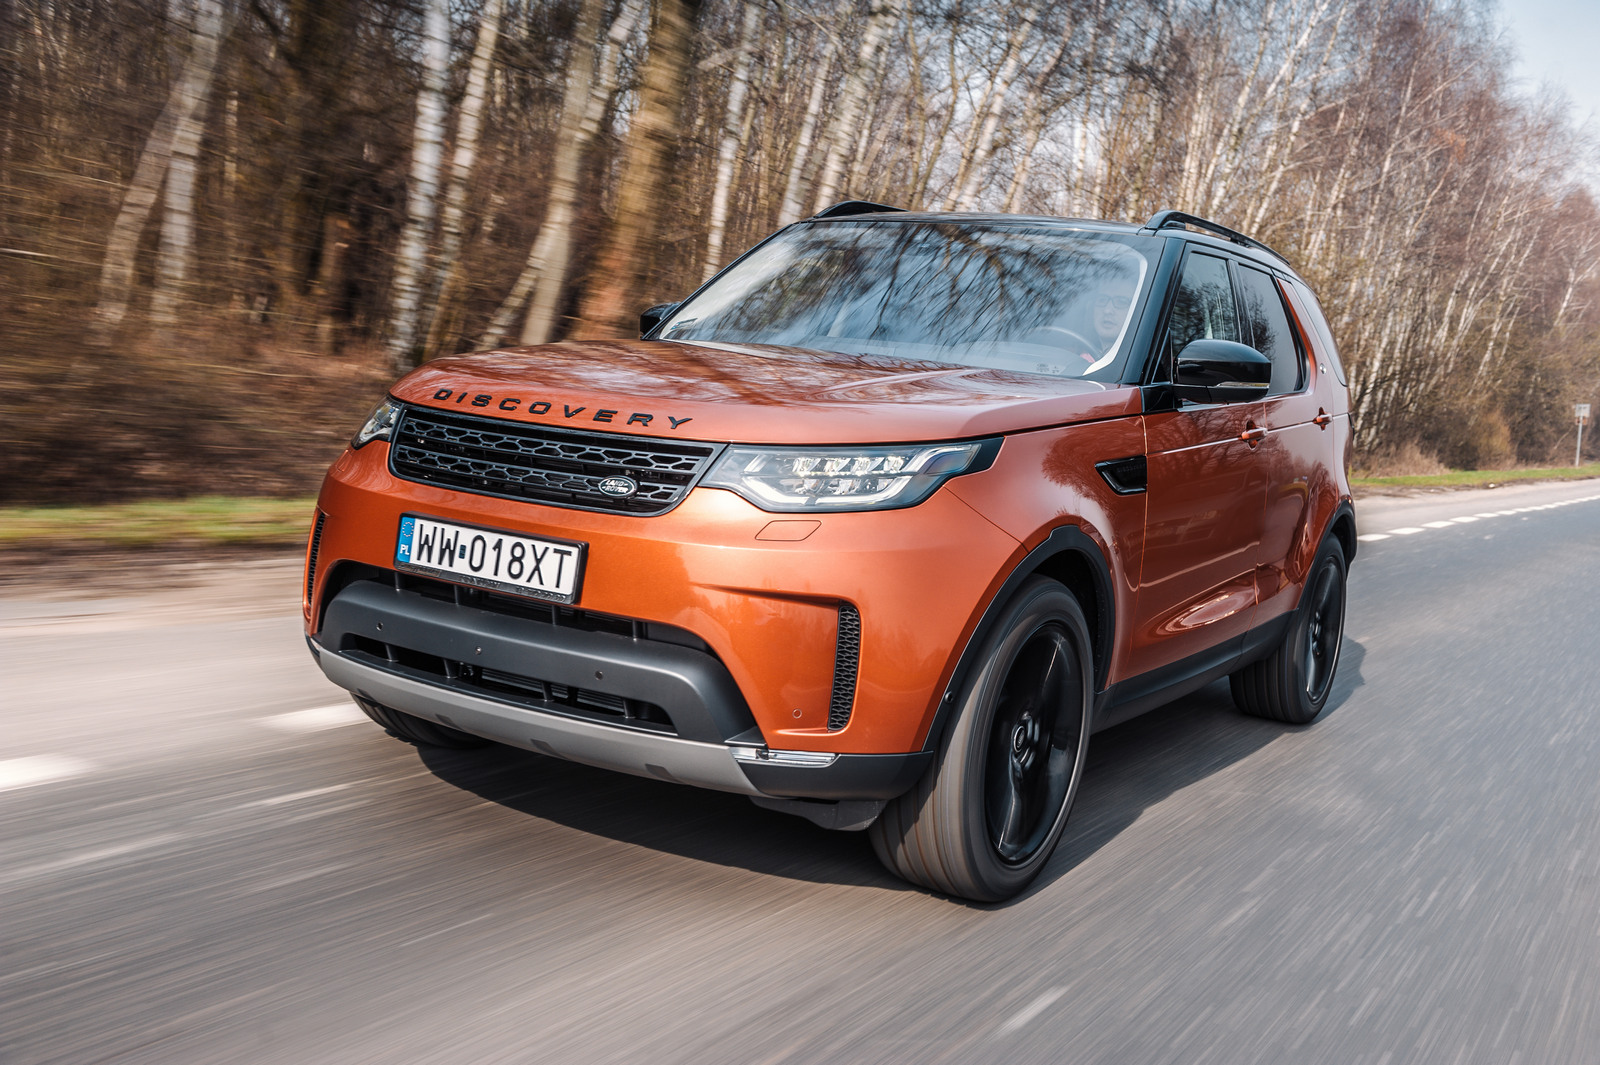 nowy land rover discovery 2017 test i opinia dane techniczne. Black Bedroom Furniture Sets. Home Design Ideas